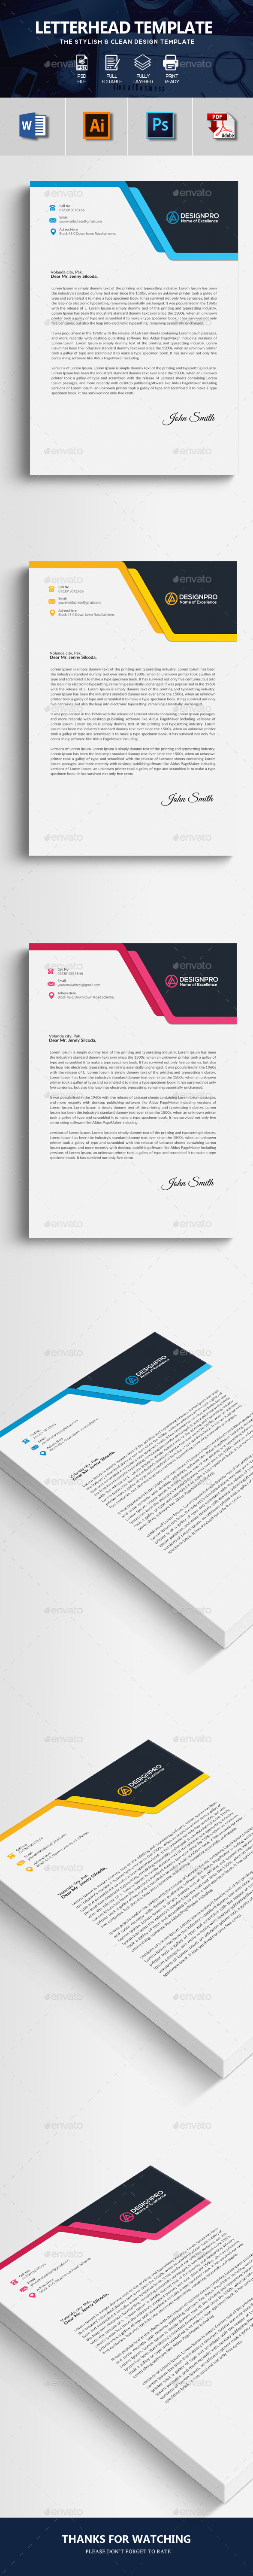 Professional Letterhead - Stationery Print Templates